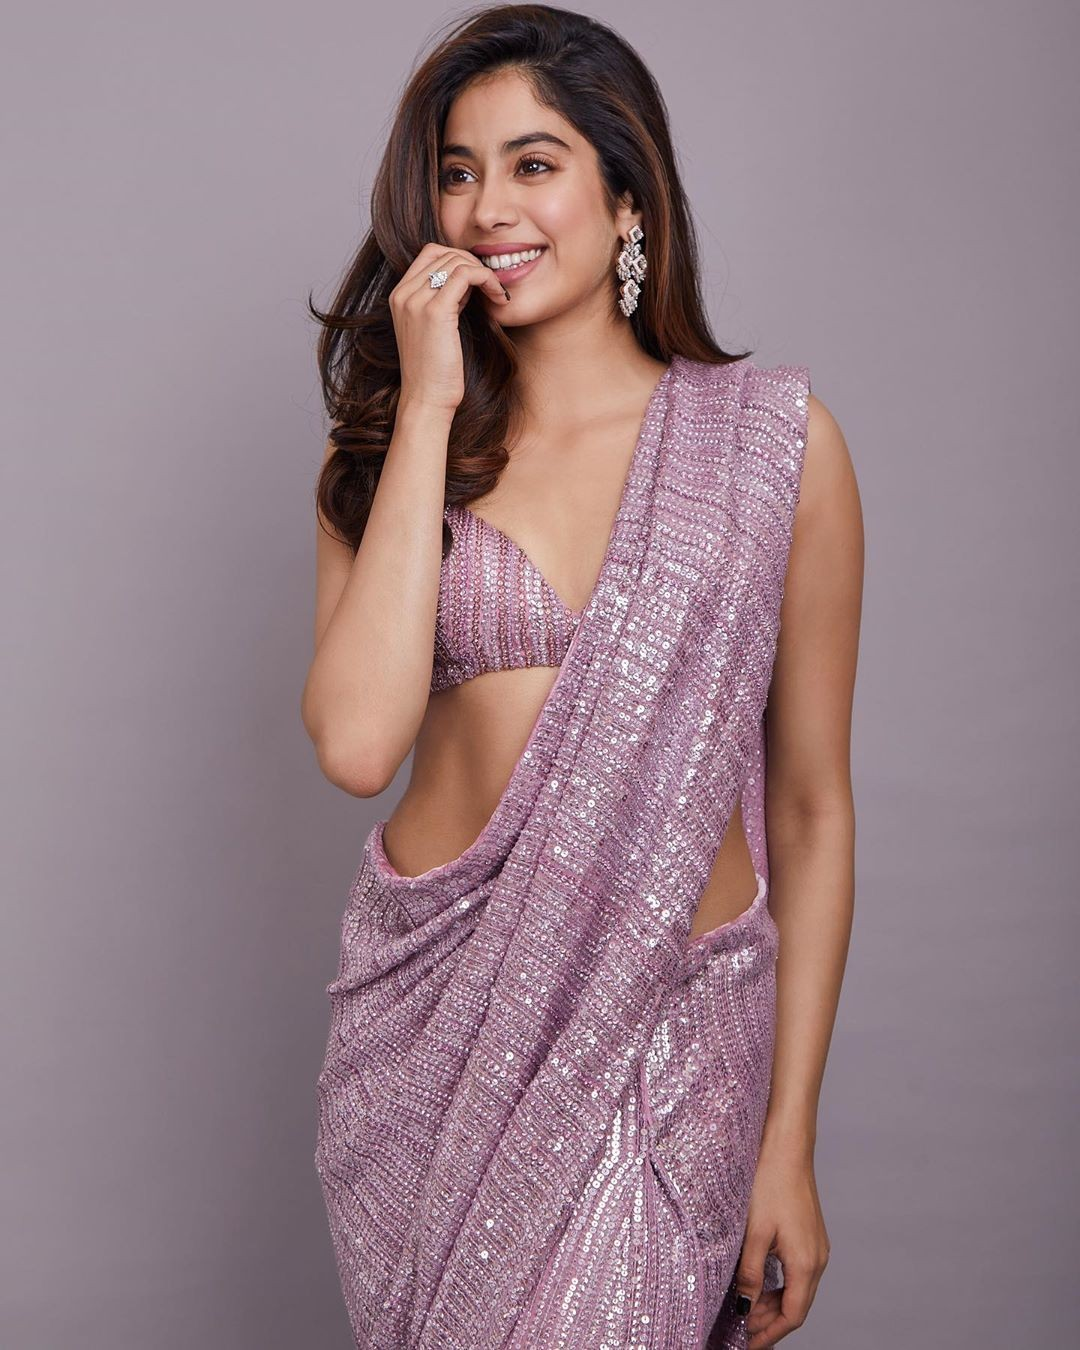 Bollywood actress jhanvi kapoor saree Stills